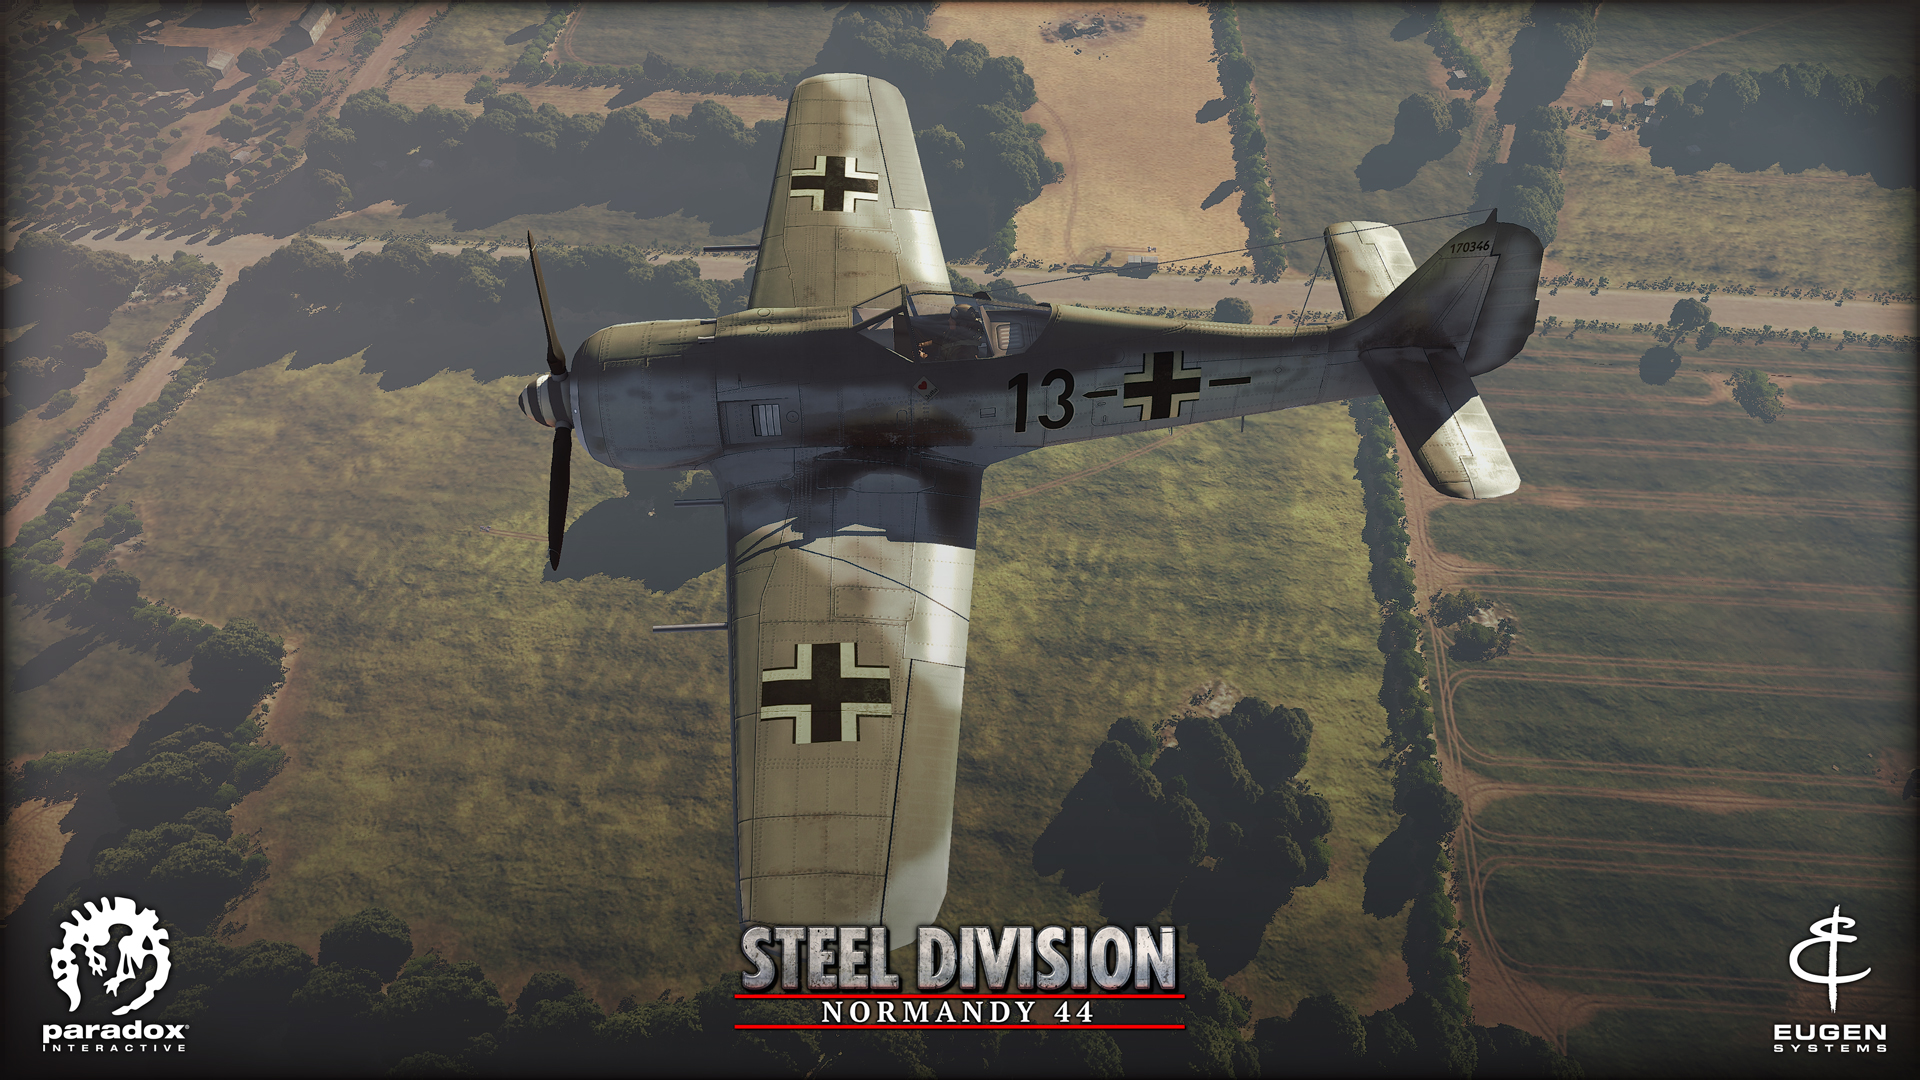 Steel Division: Normandy 44 Priller Ace